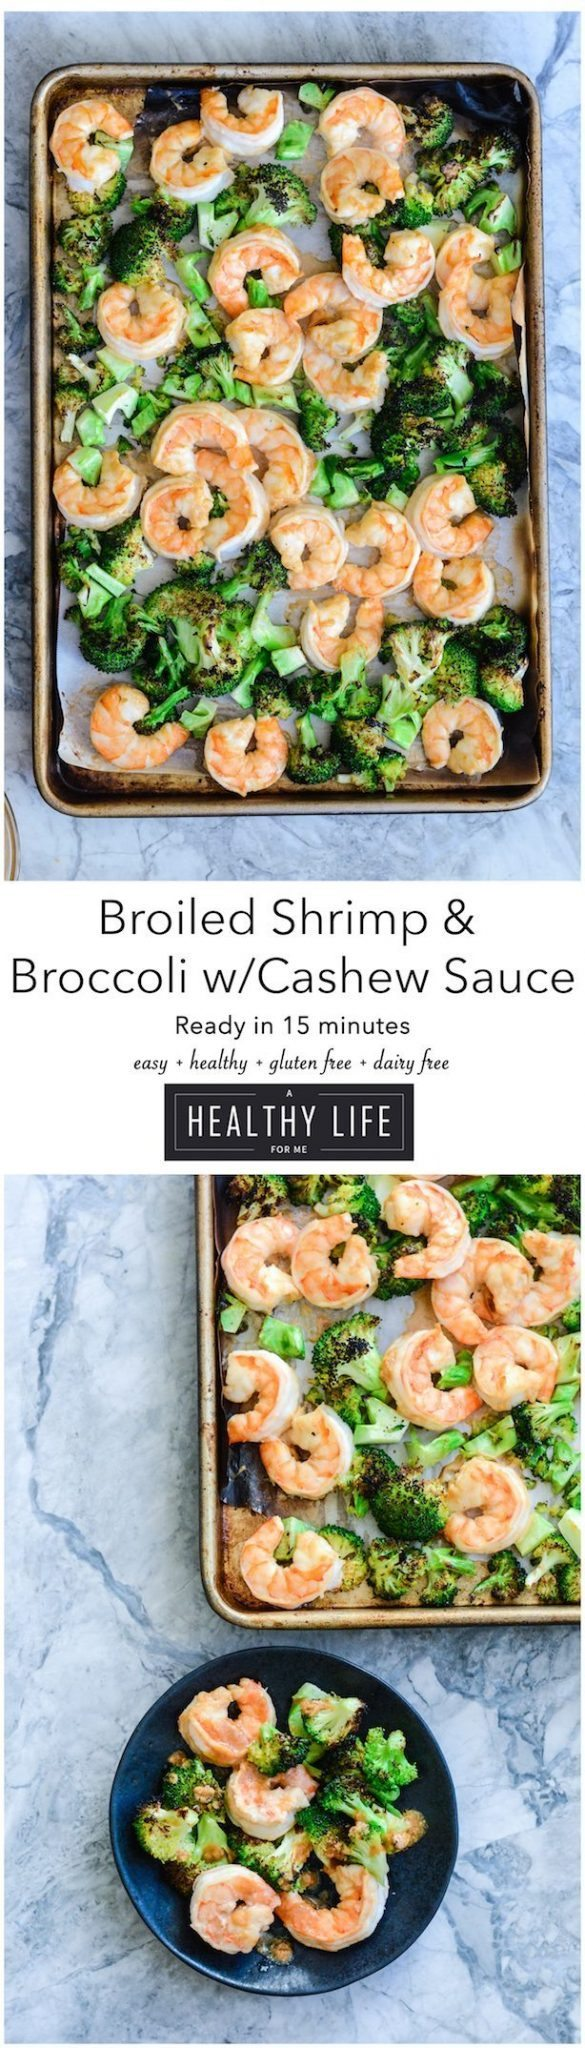 Broiled Shrimp and Broccoli with Cashew Sauce is gluten free dairy free healthy and ready in 15 minutes | ahealthylifeforme.com